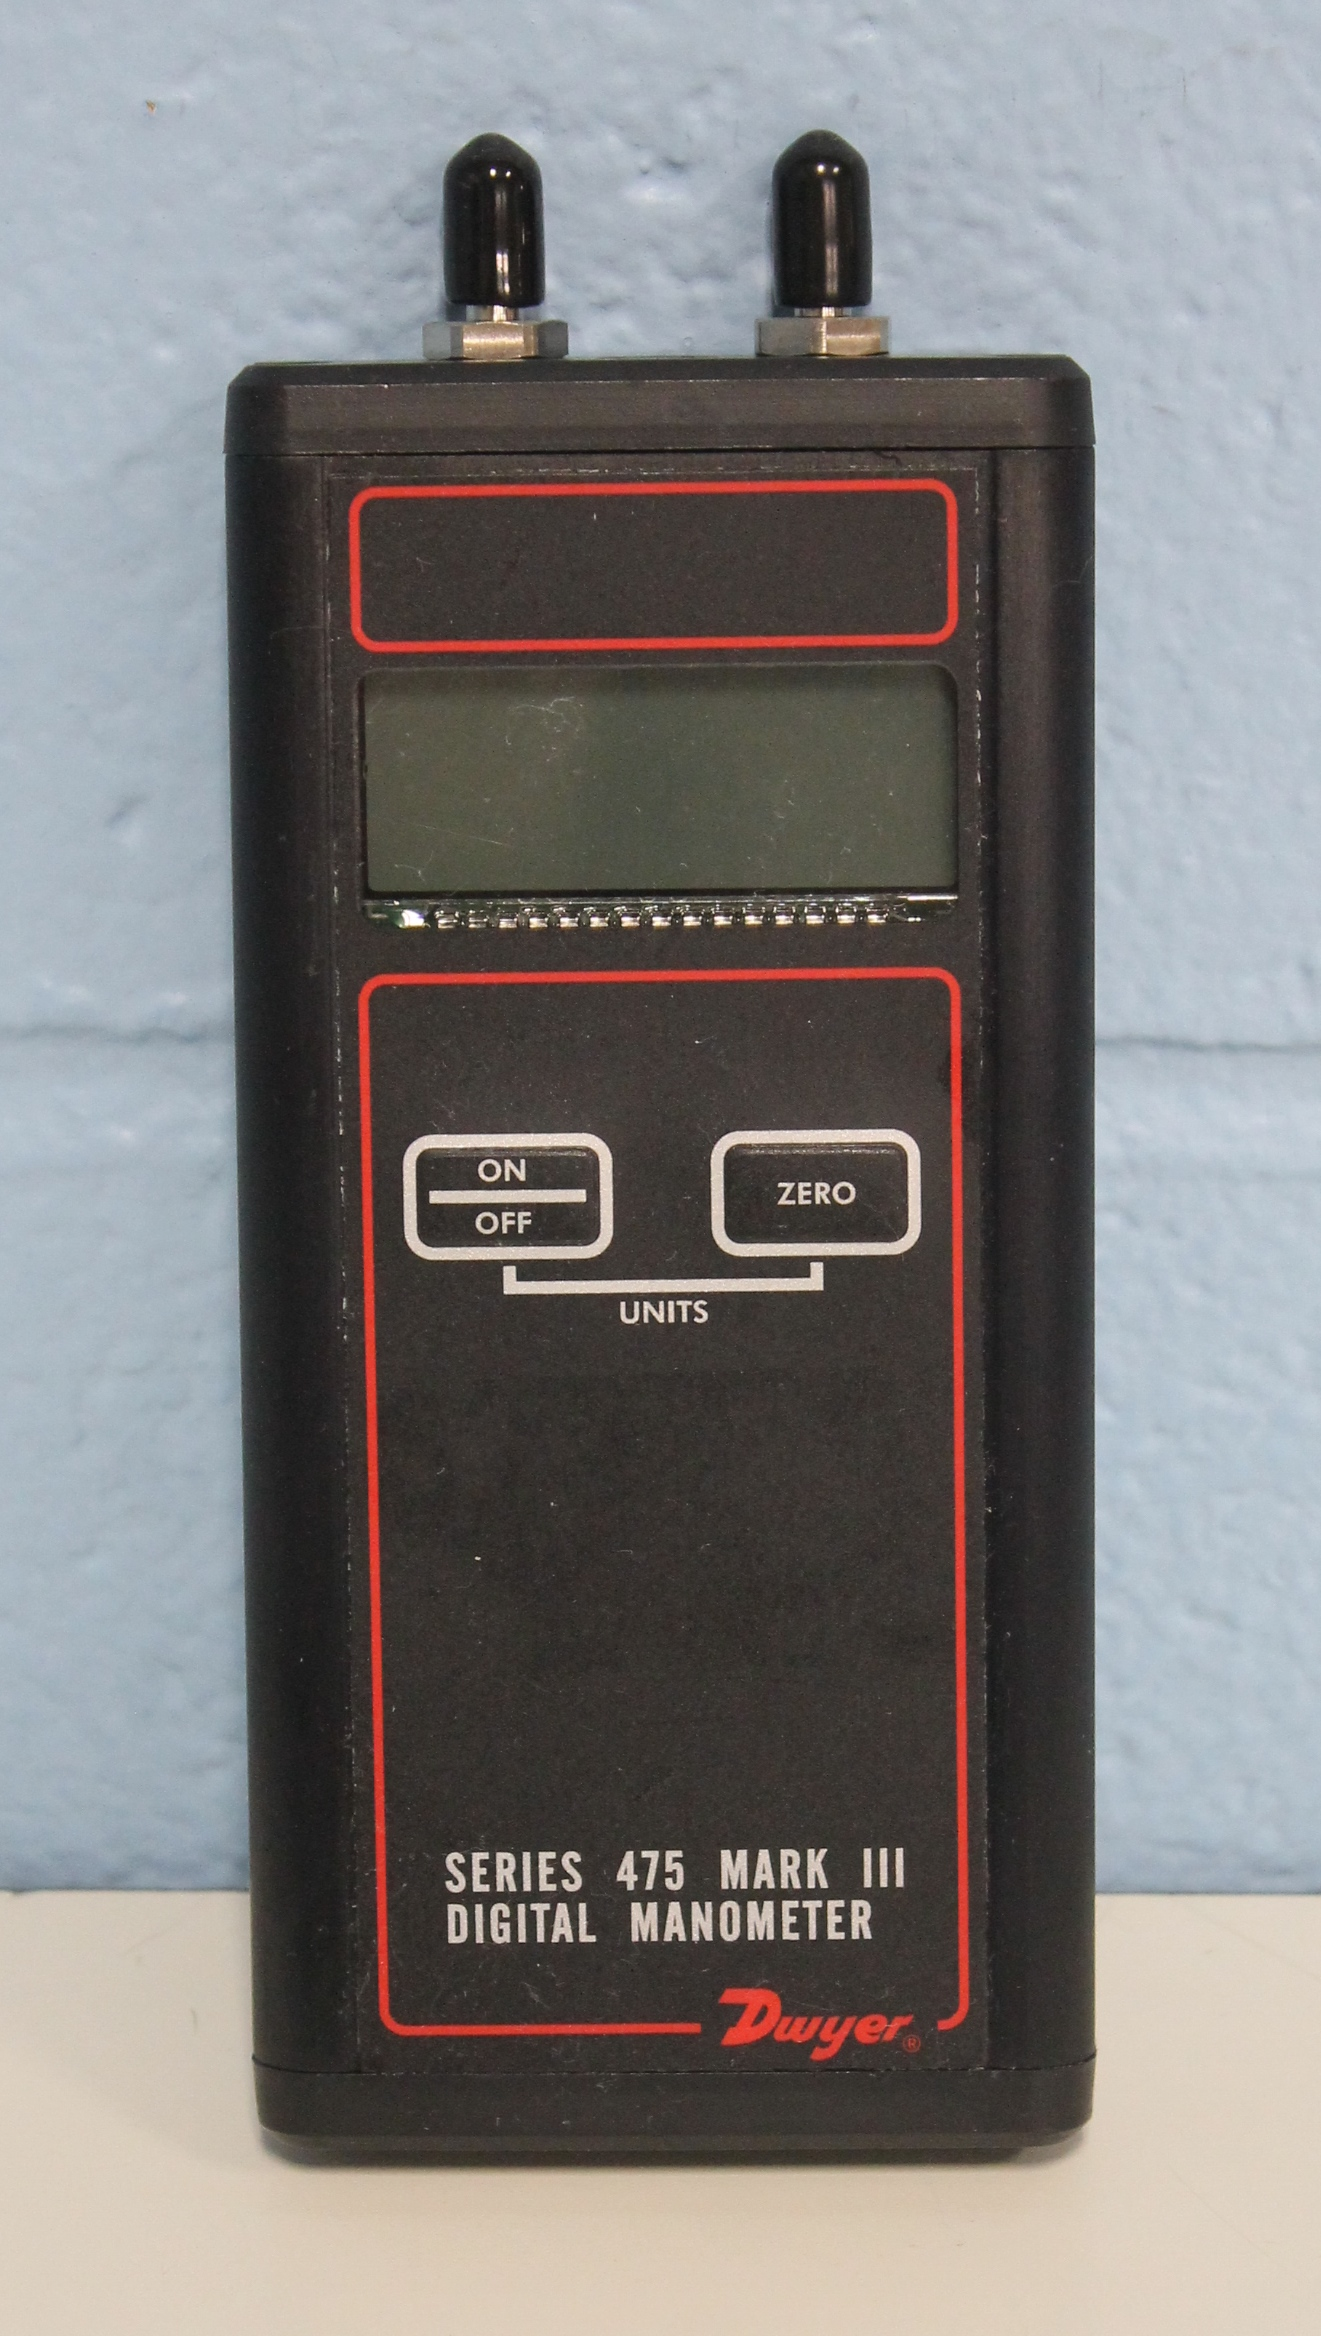 dwyer series 475 mark iii digital manometer manual